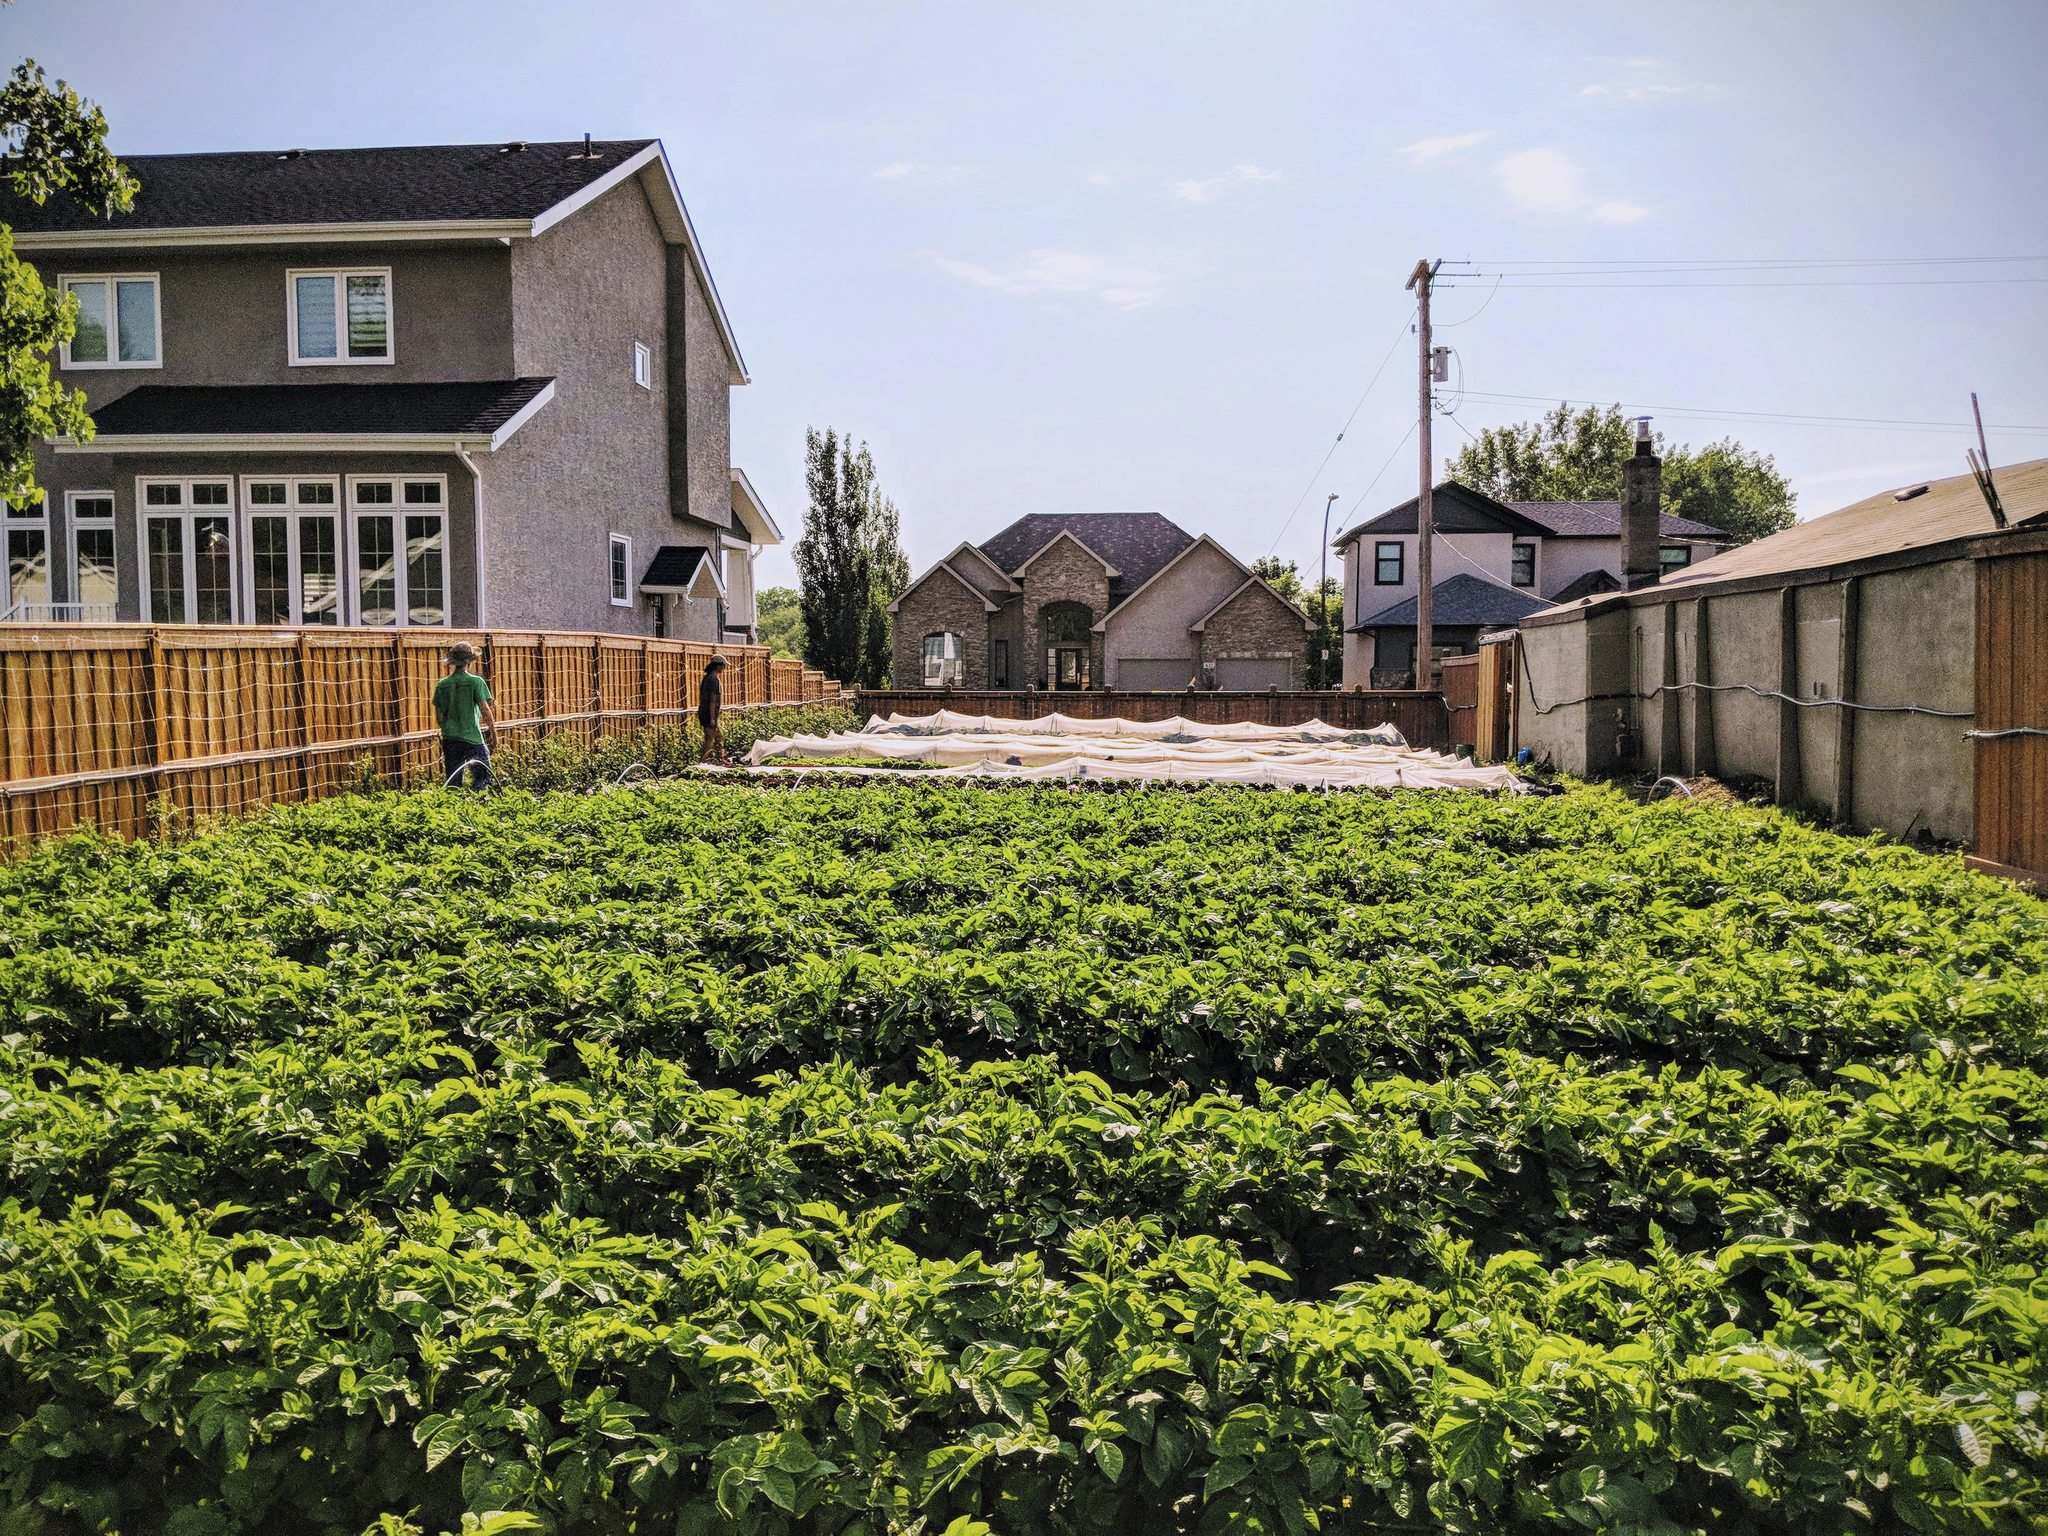 SUPPLIED</p><p>Colin Remillard of St. Leon's Garden Centre says community gardens can be a great way to utilize empty lots, beautify a neighbourhood and encourage local food growth and consumptions. His dad runs one that produces veggies that St. Leon sells.</p>